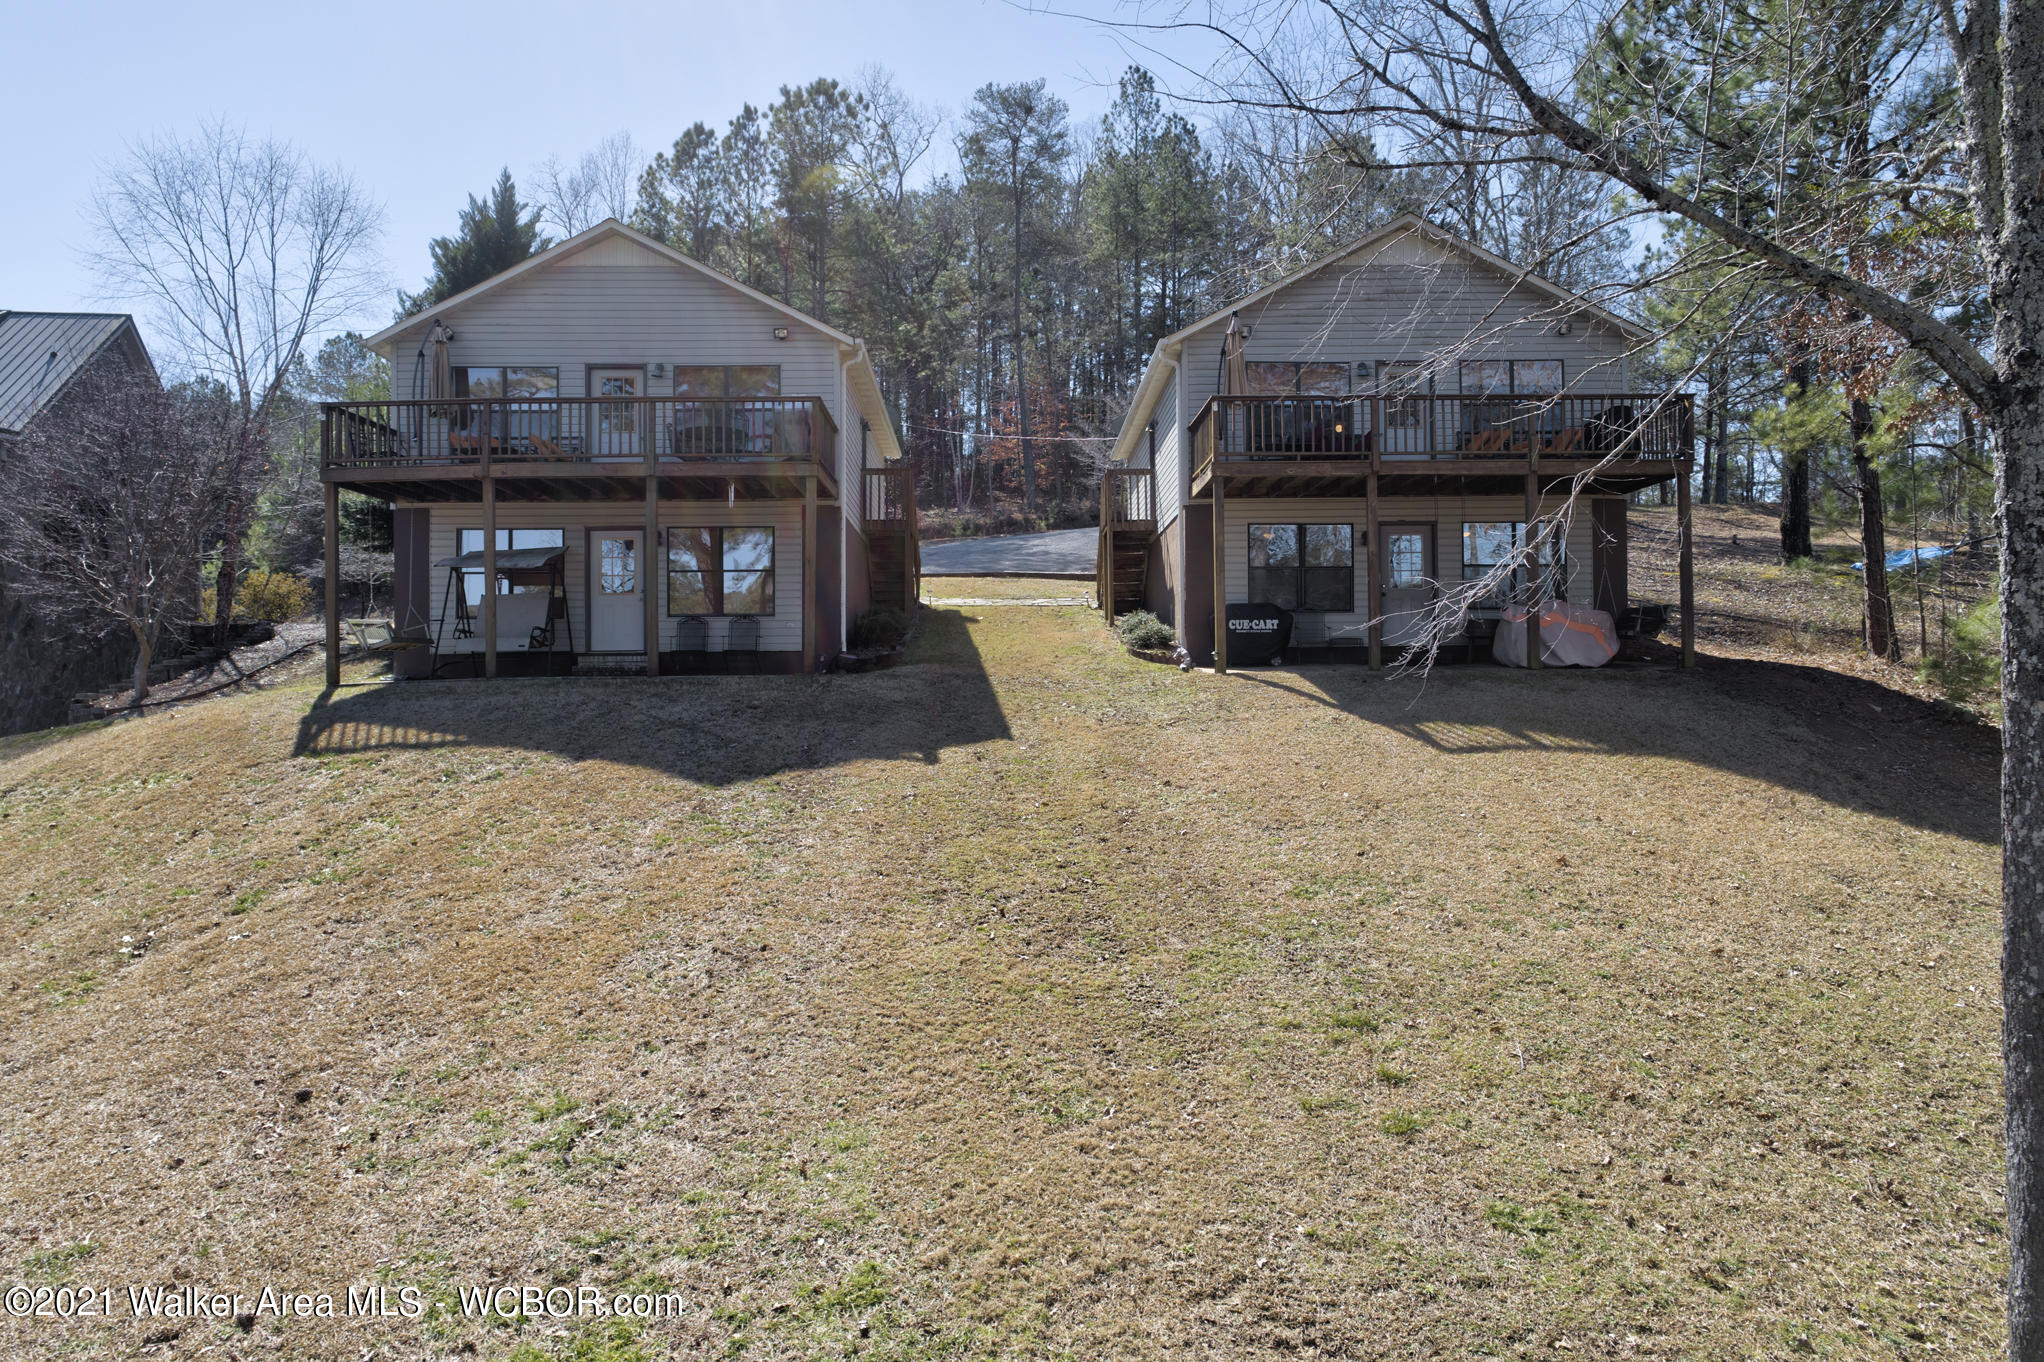 65 & 63 SAIL LANE, DOUBLE SPRINGS, Alabama 35553, 3 Bedrooms Bedrooms, ,2 BathroomsBathrooms,Single Family,For Sale,65 & 63 SAIL LANE,2,21-346